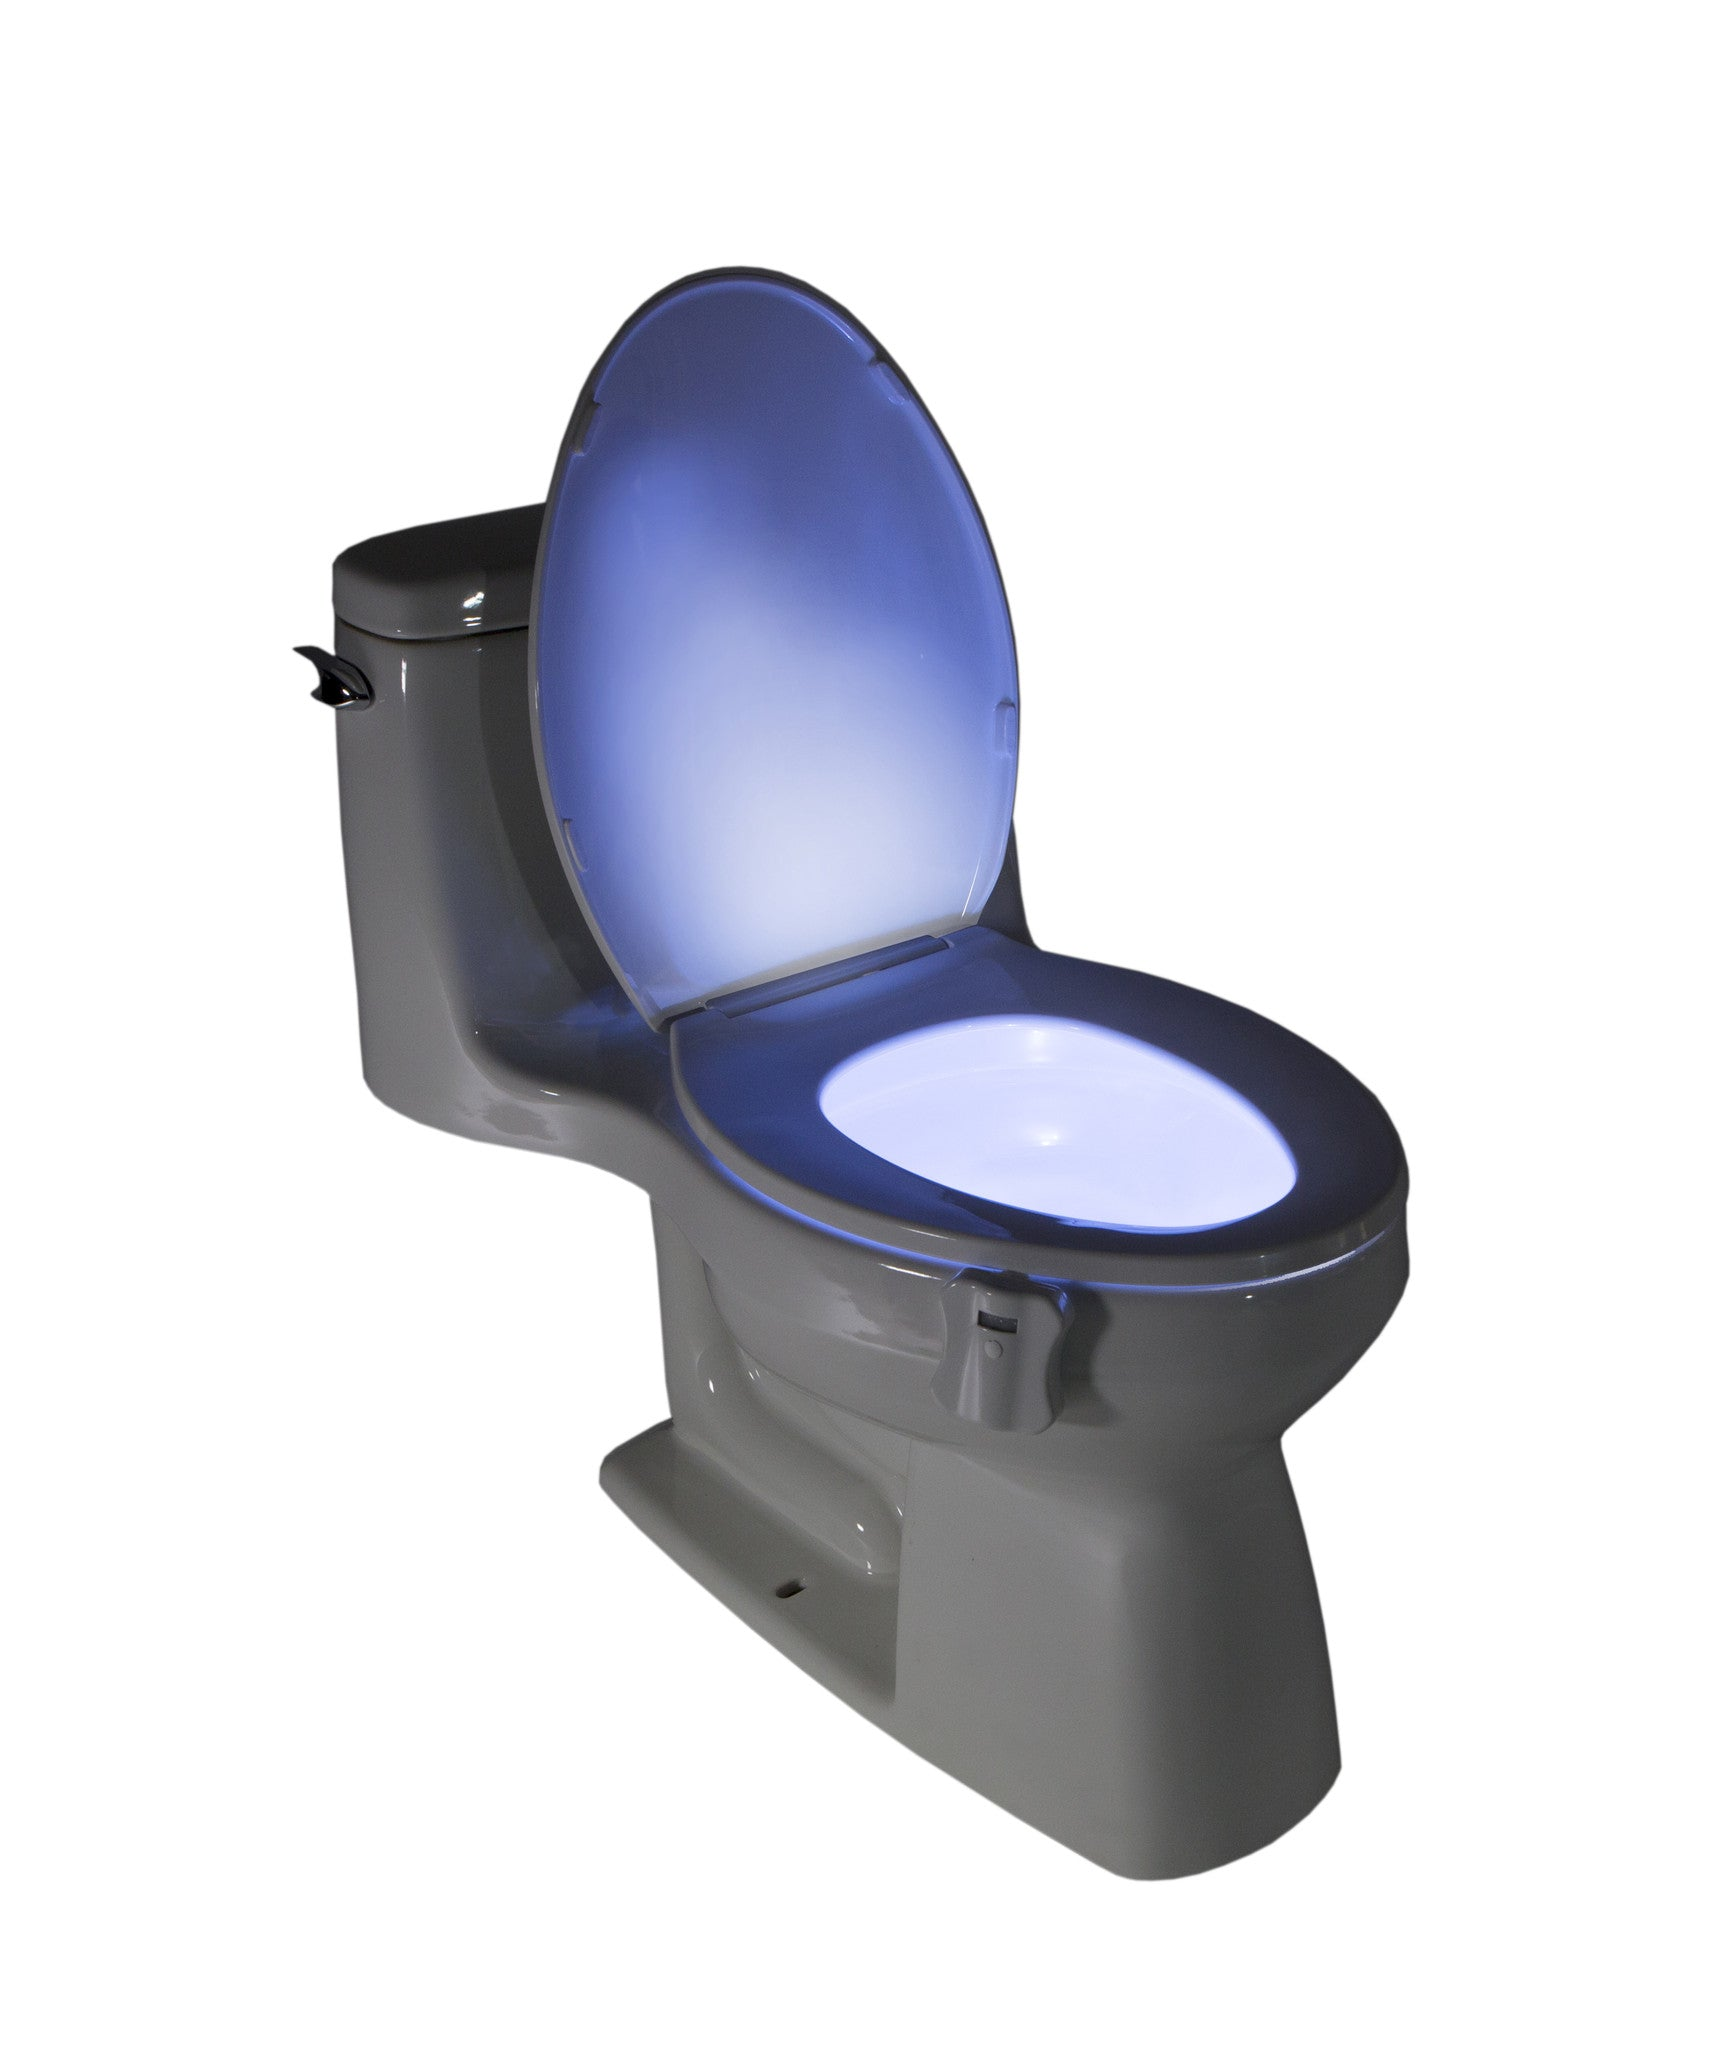 3-Pack GlowBowl - Motion Activated Toilet Nightlight